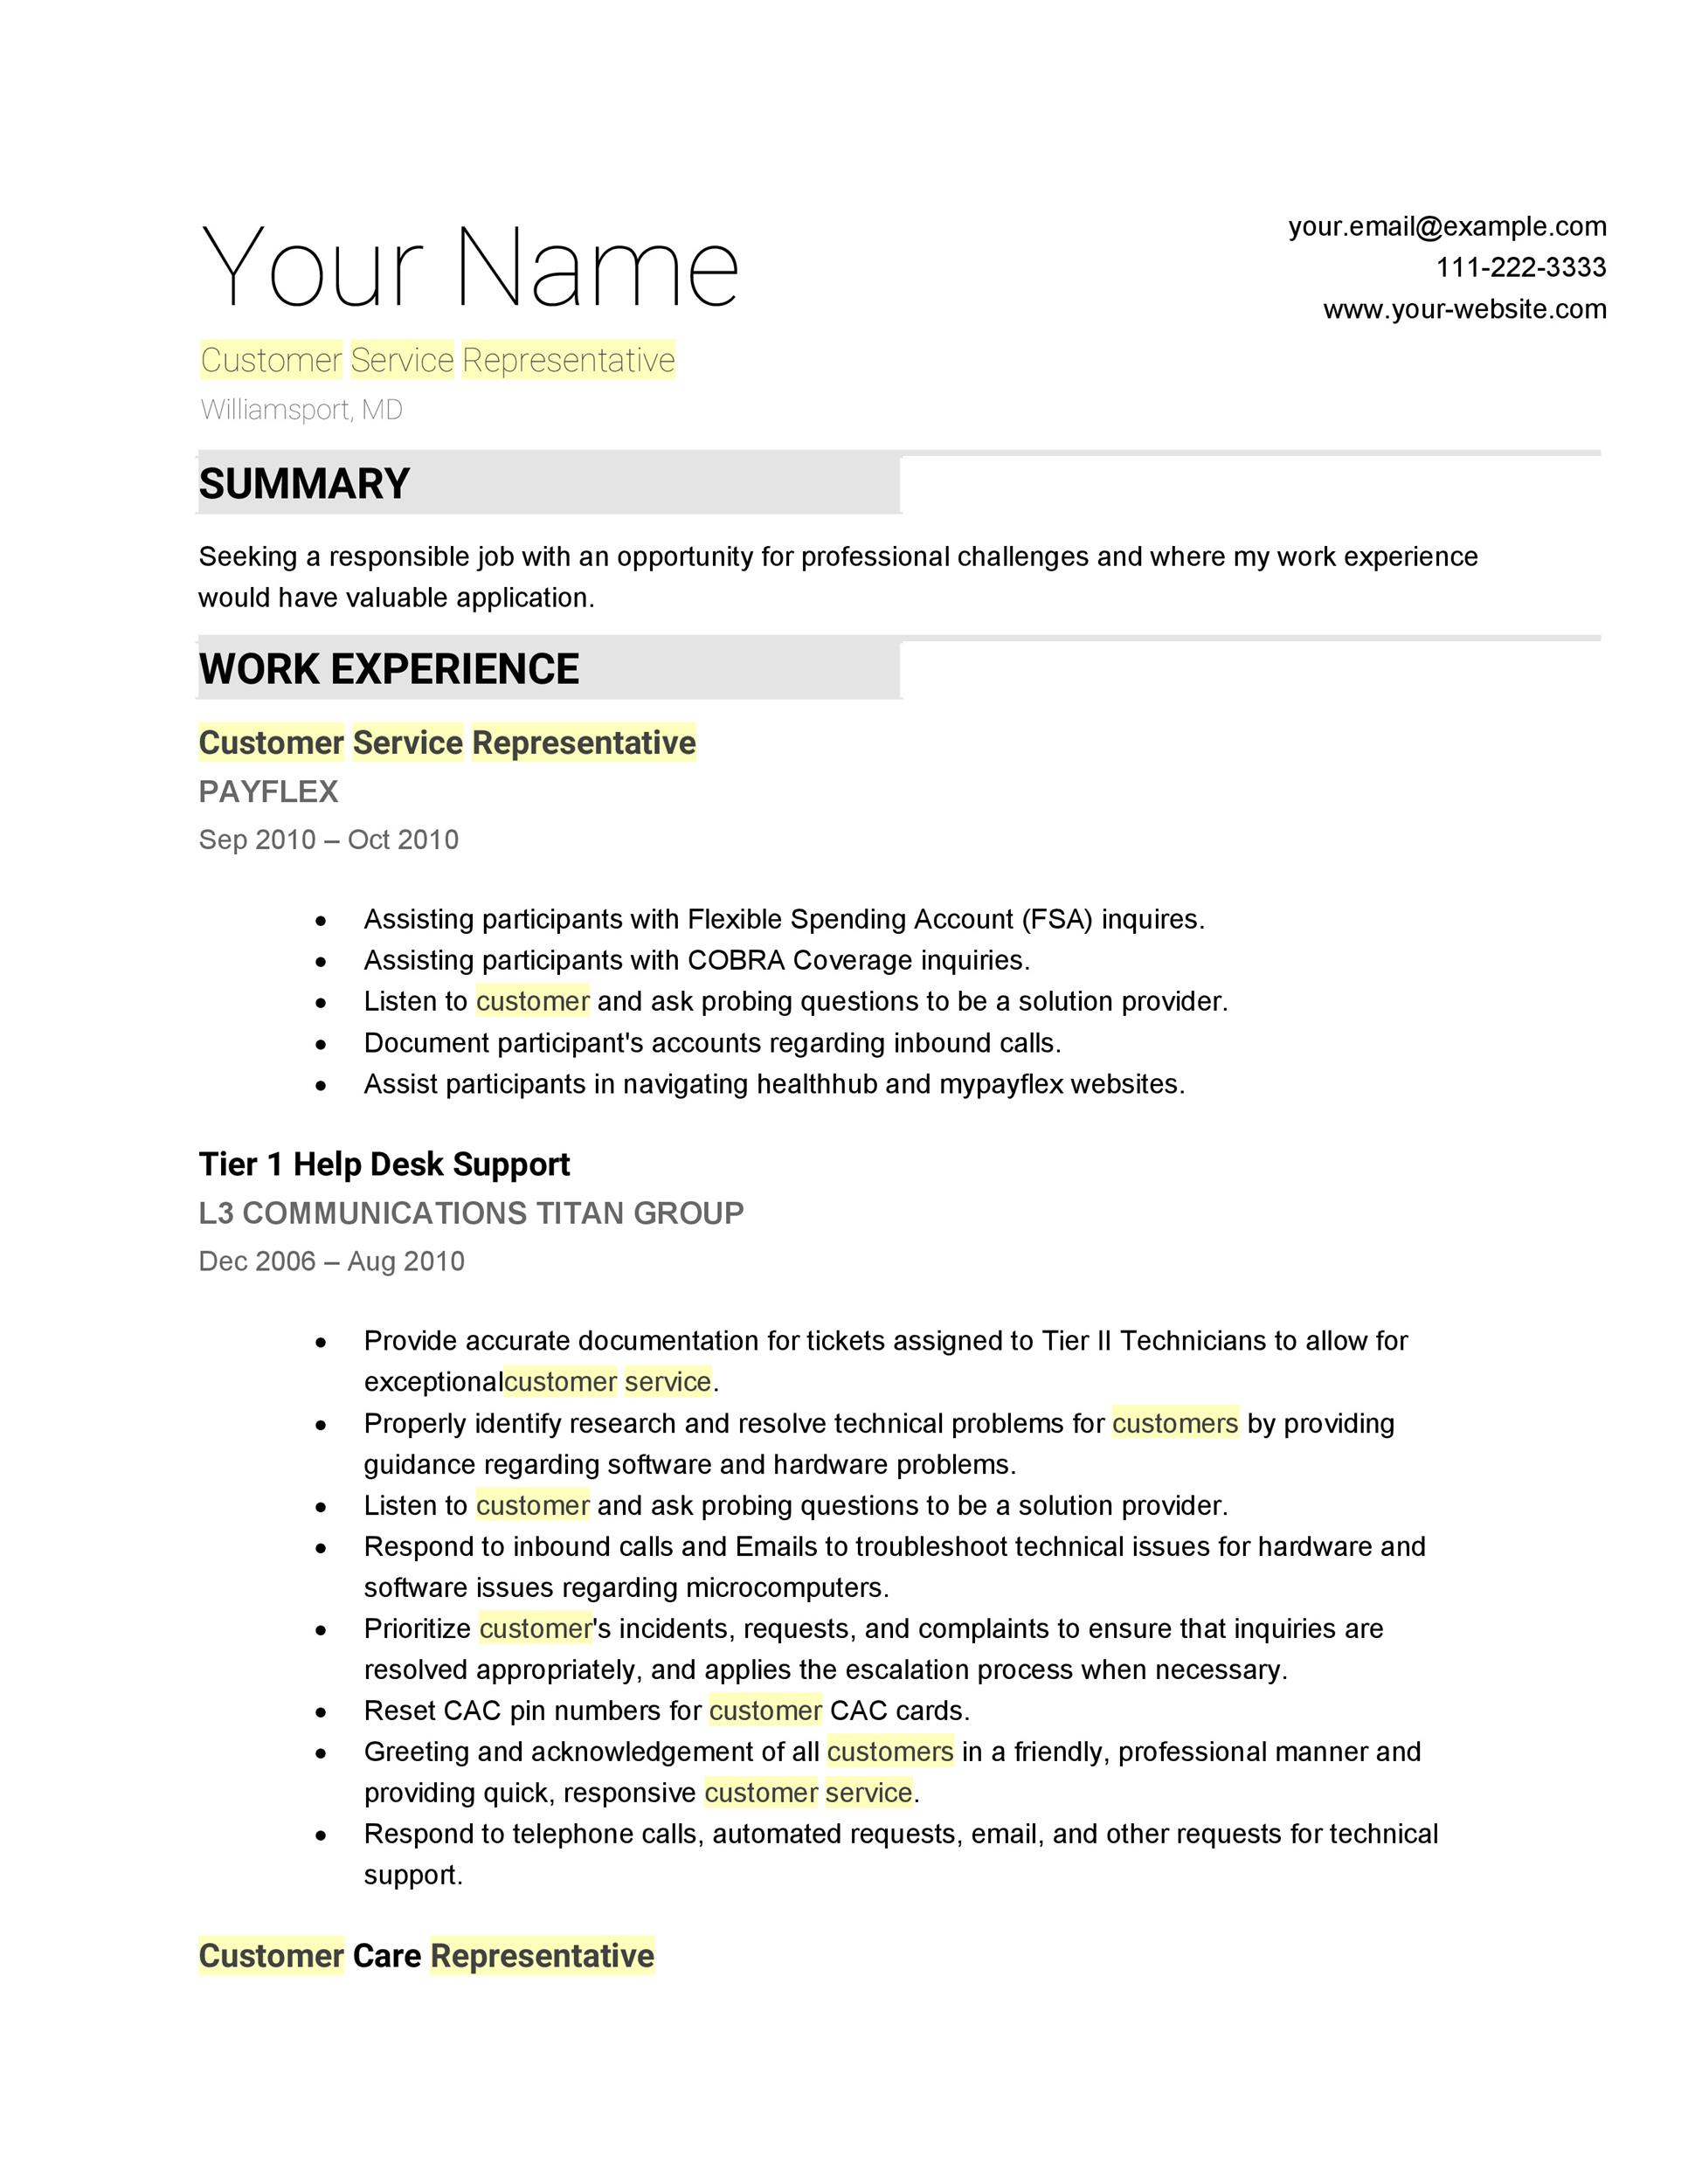 sample customer service resume profile representative skills pdf template